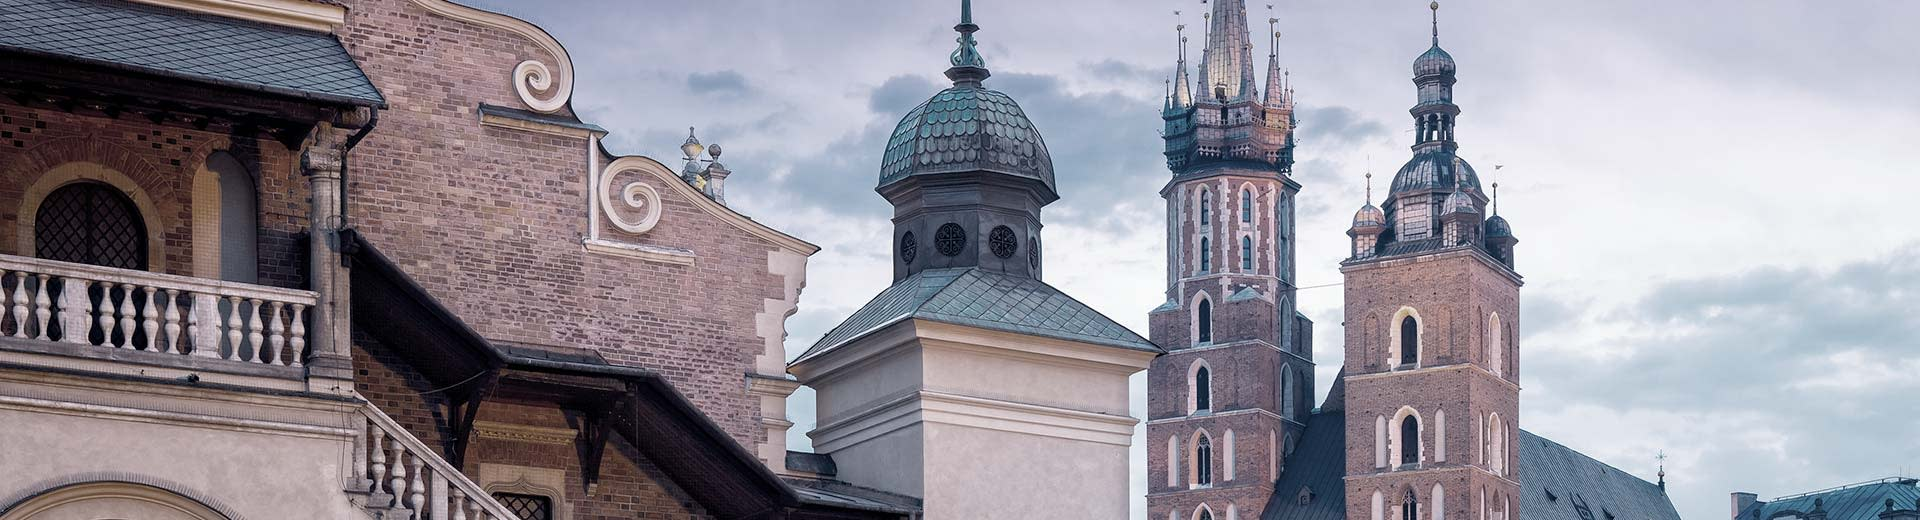 Beautiful Polish churches set against a cloudy sky in Krakow